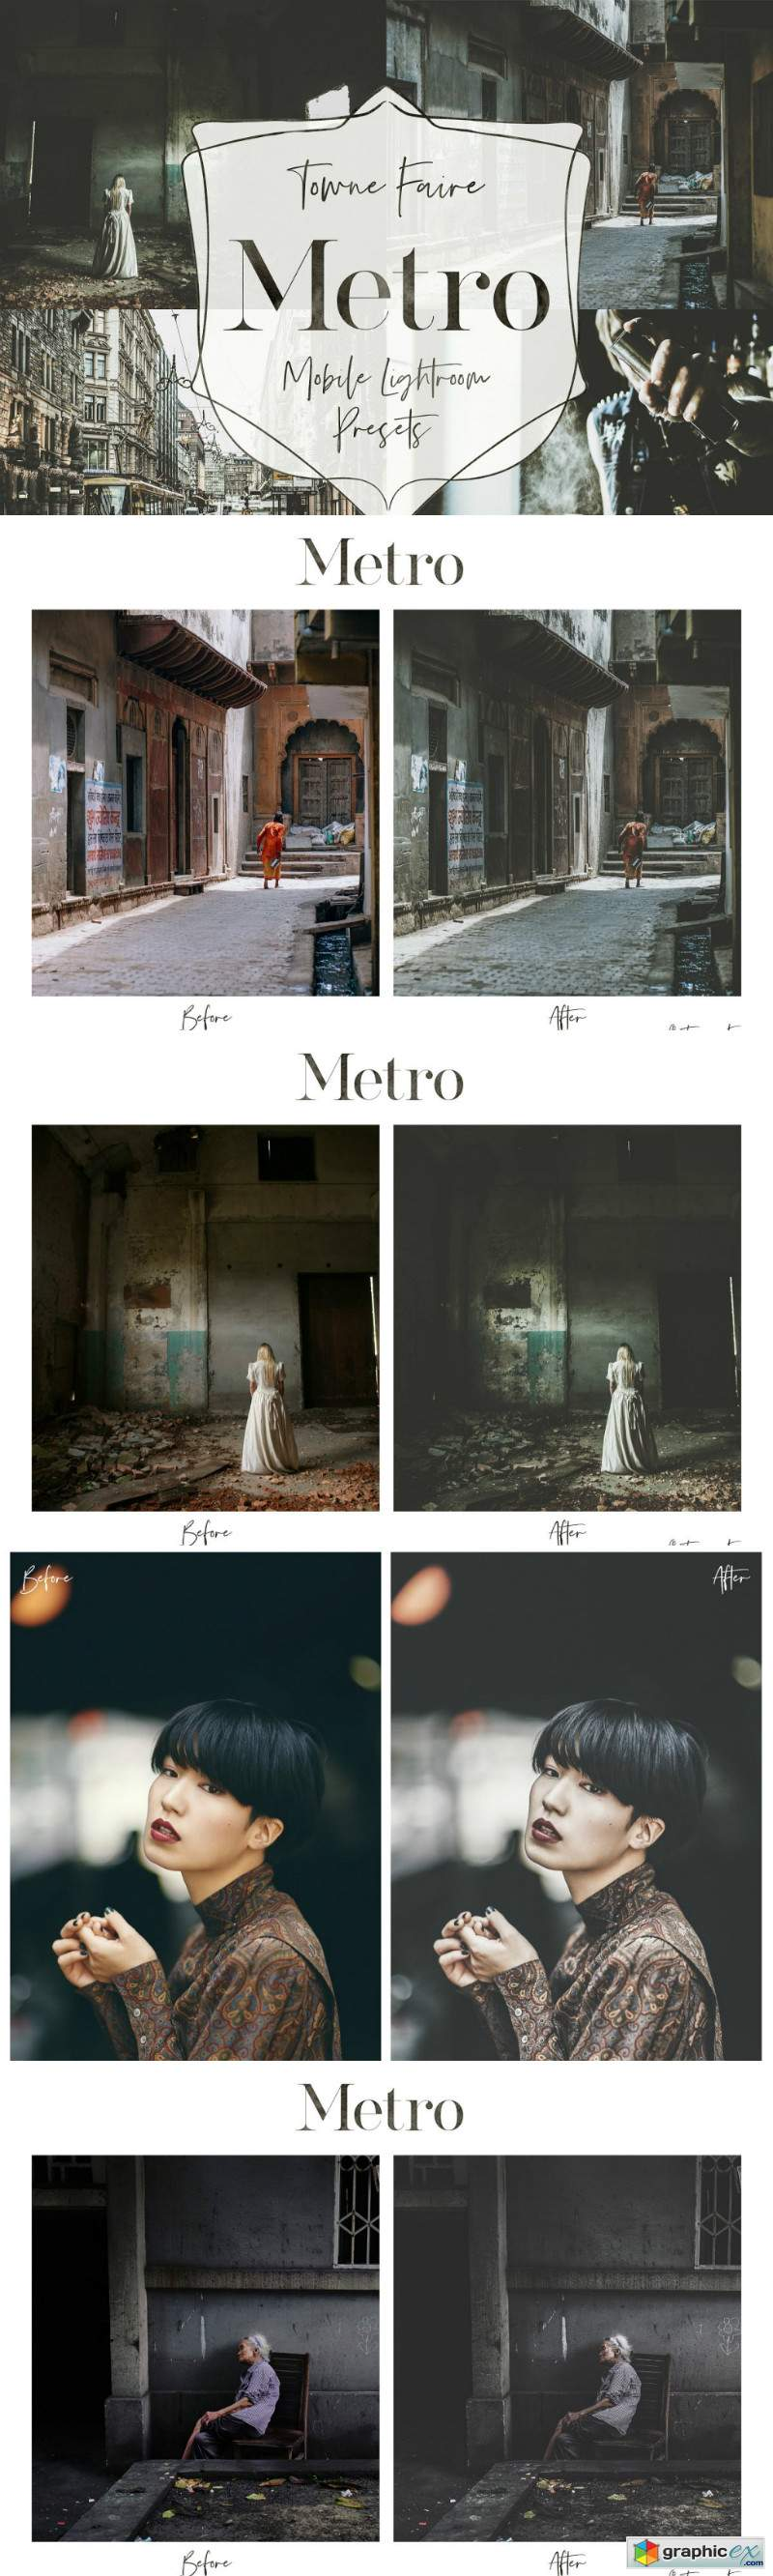 Metro - Mobile Lightroom Presets